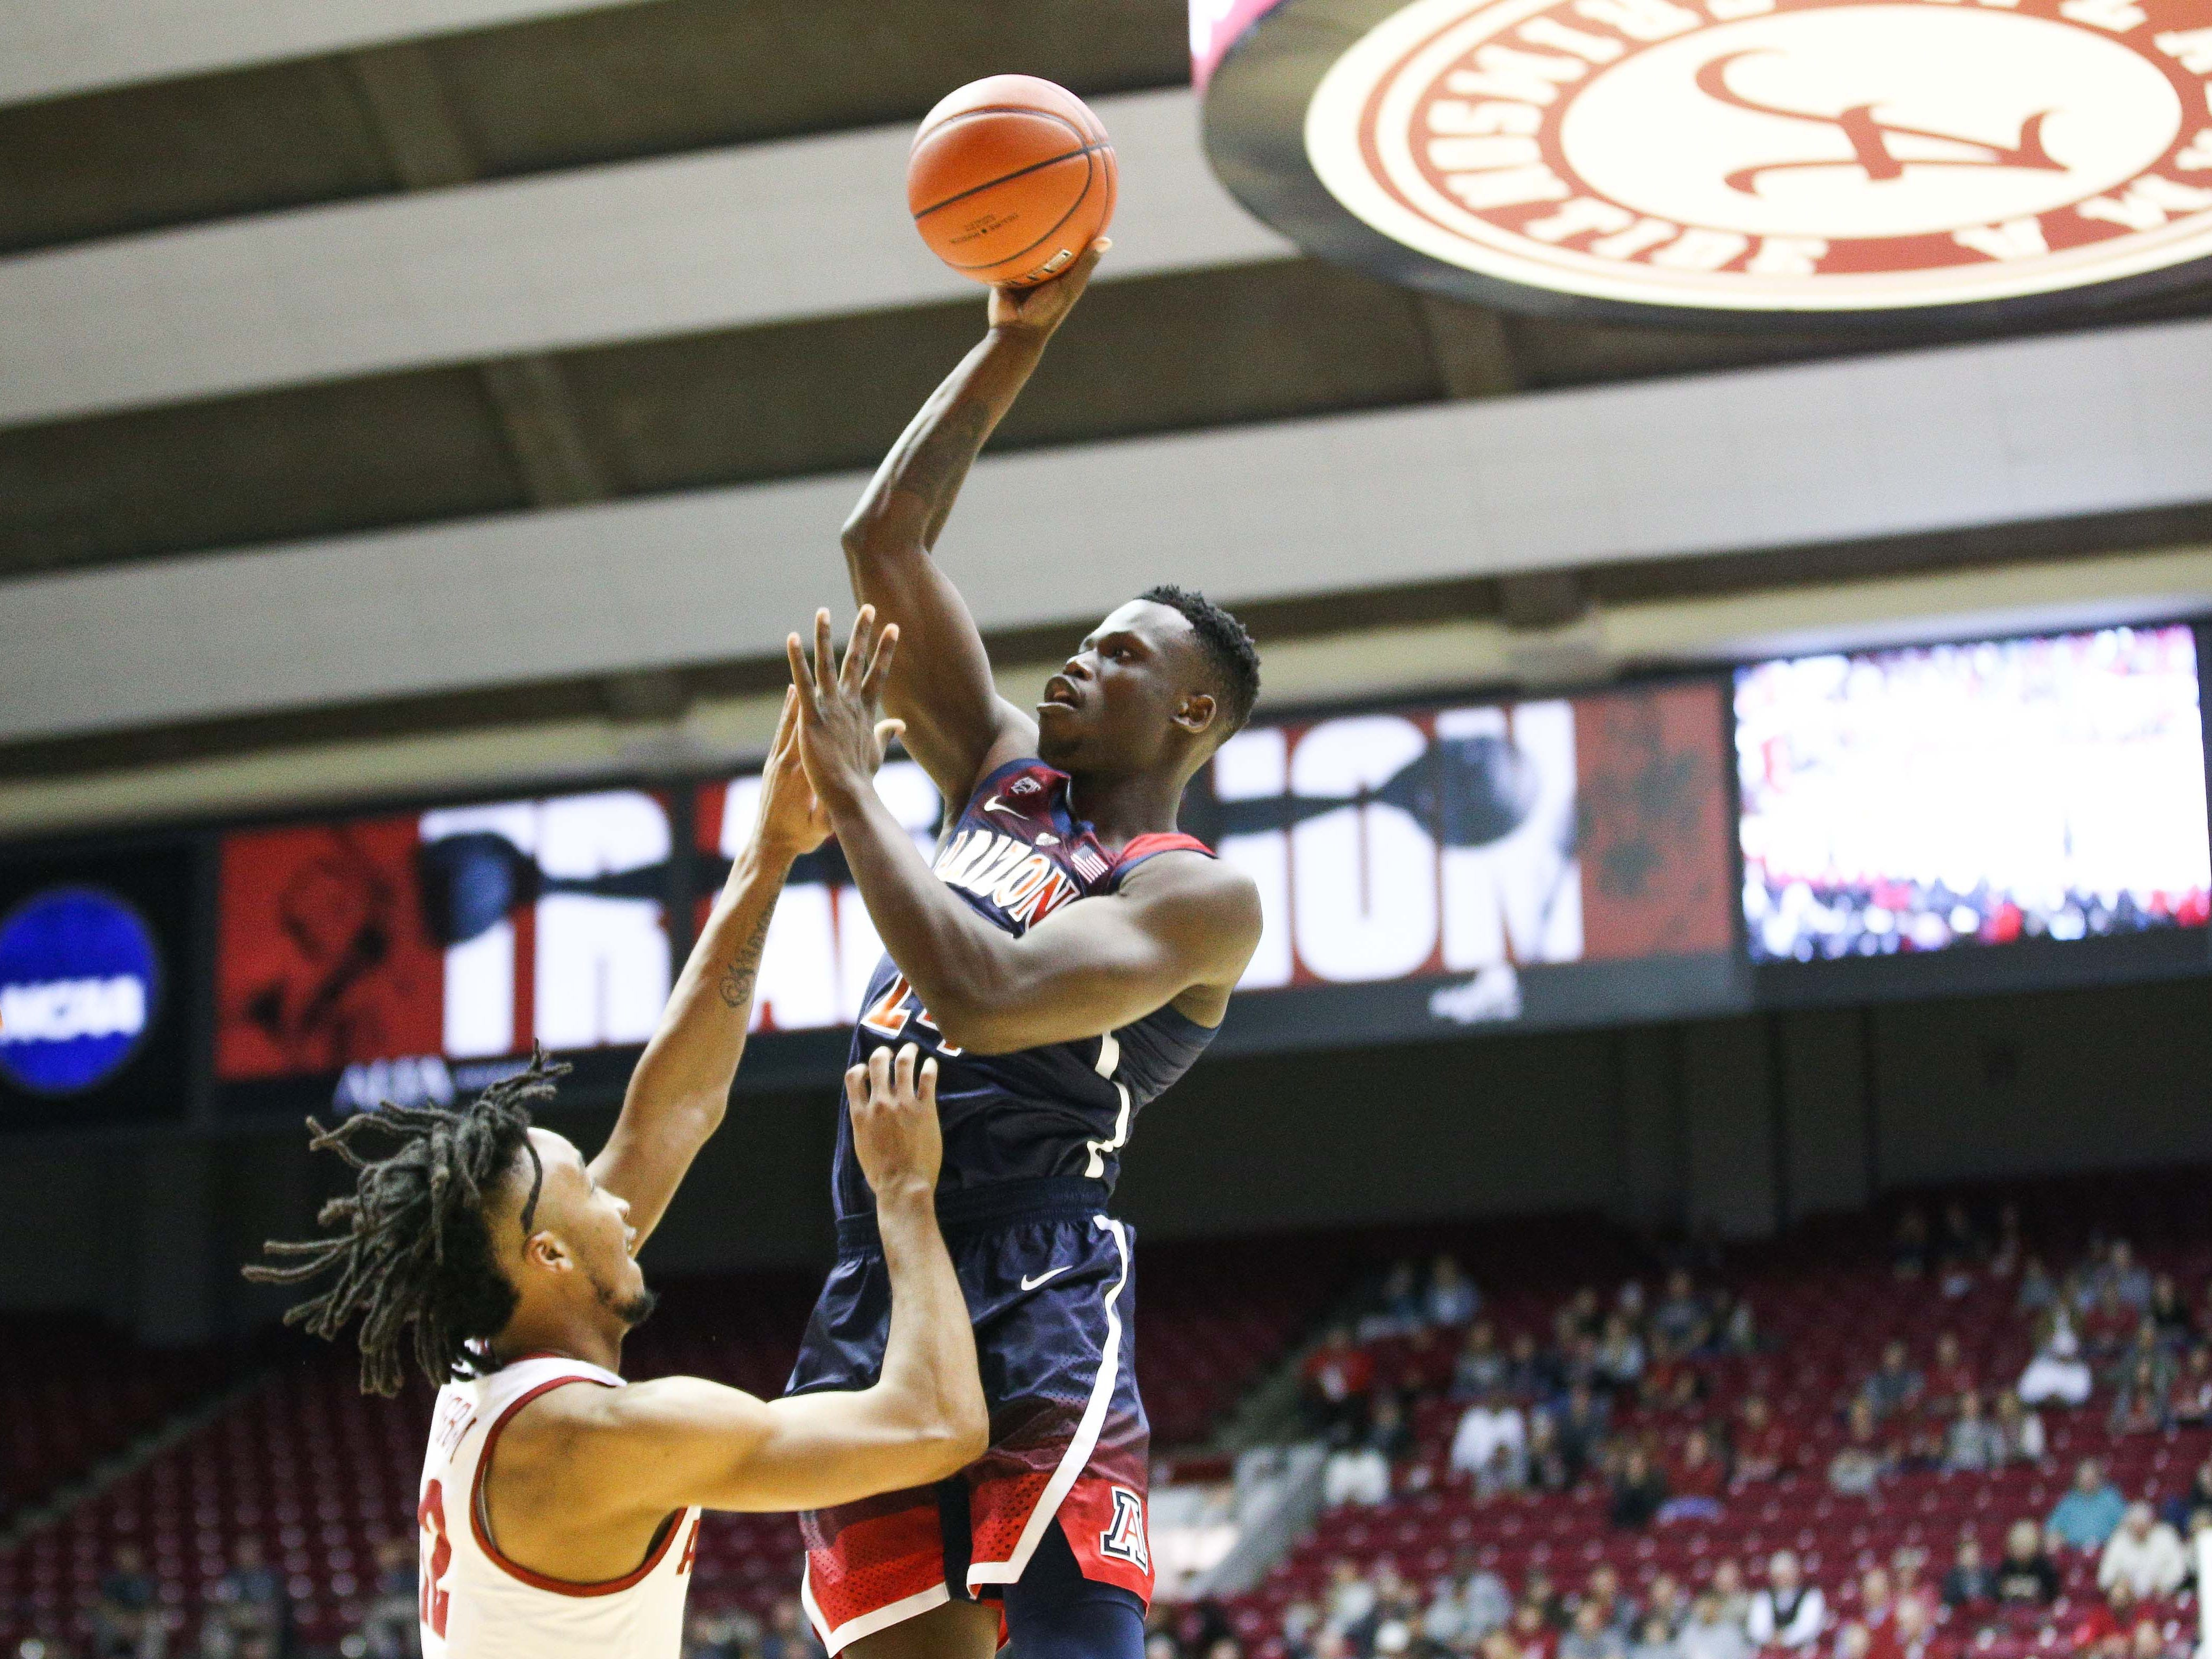 Dec 9, 2018; Tuscaloosa, AL, USA; Arizona Wildcats guard Emmanuel Akot (24) shoots over Alabama Crimson Tide guard Dazon Ingram (12) during the first half at Coleman Coliseum. Mandatory Credit: Marvin Gentry-USA TODAY Sports